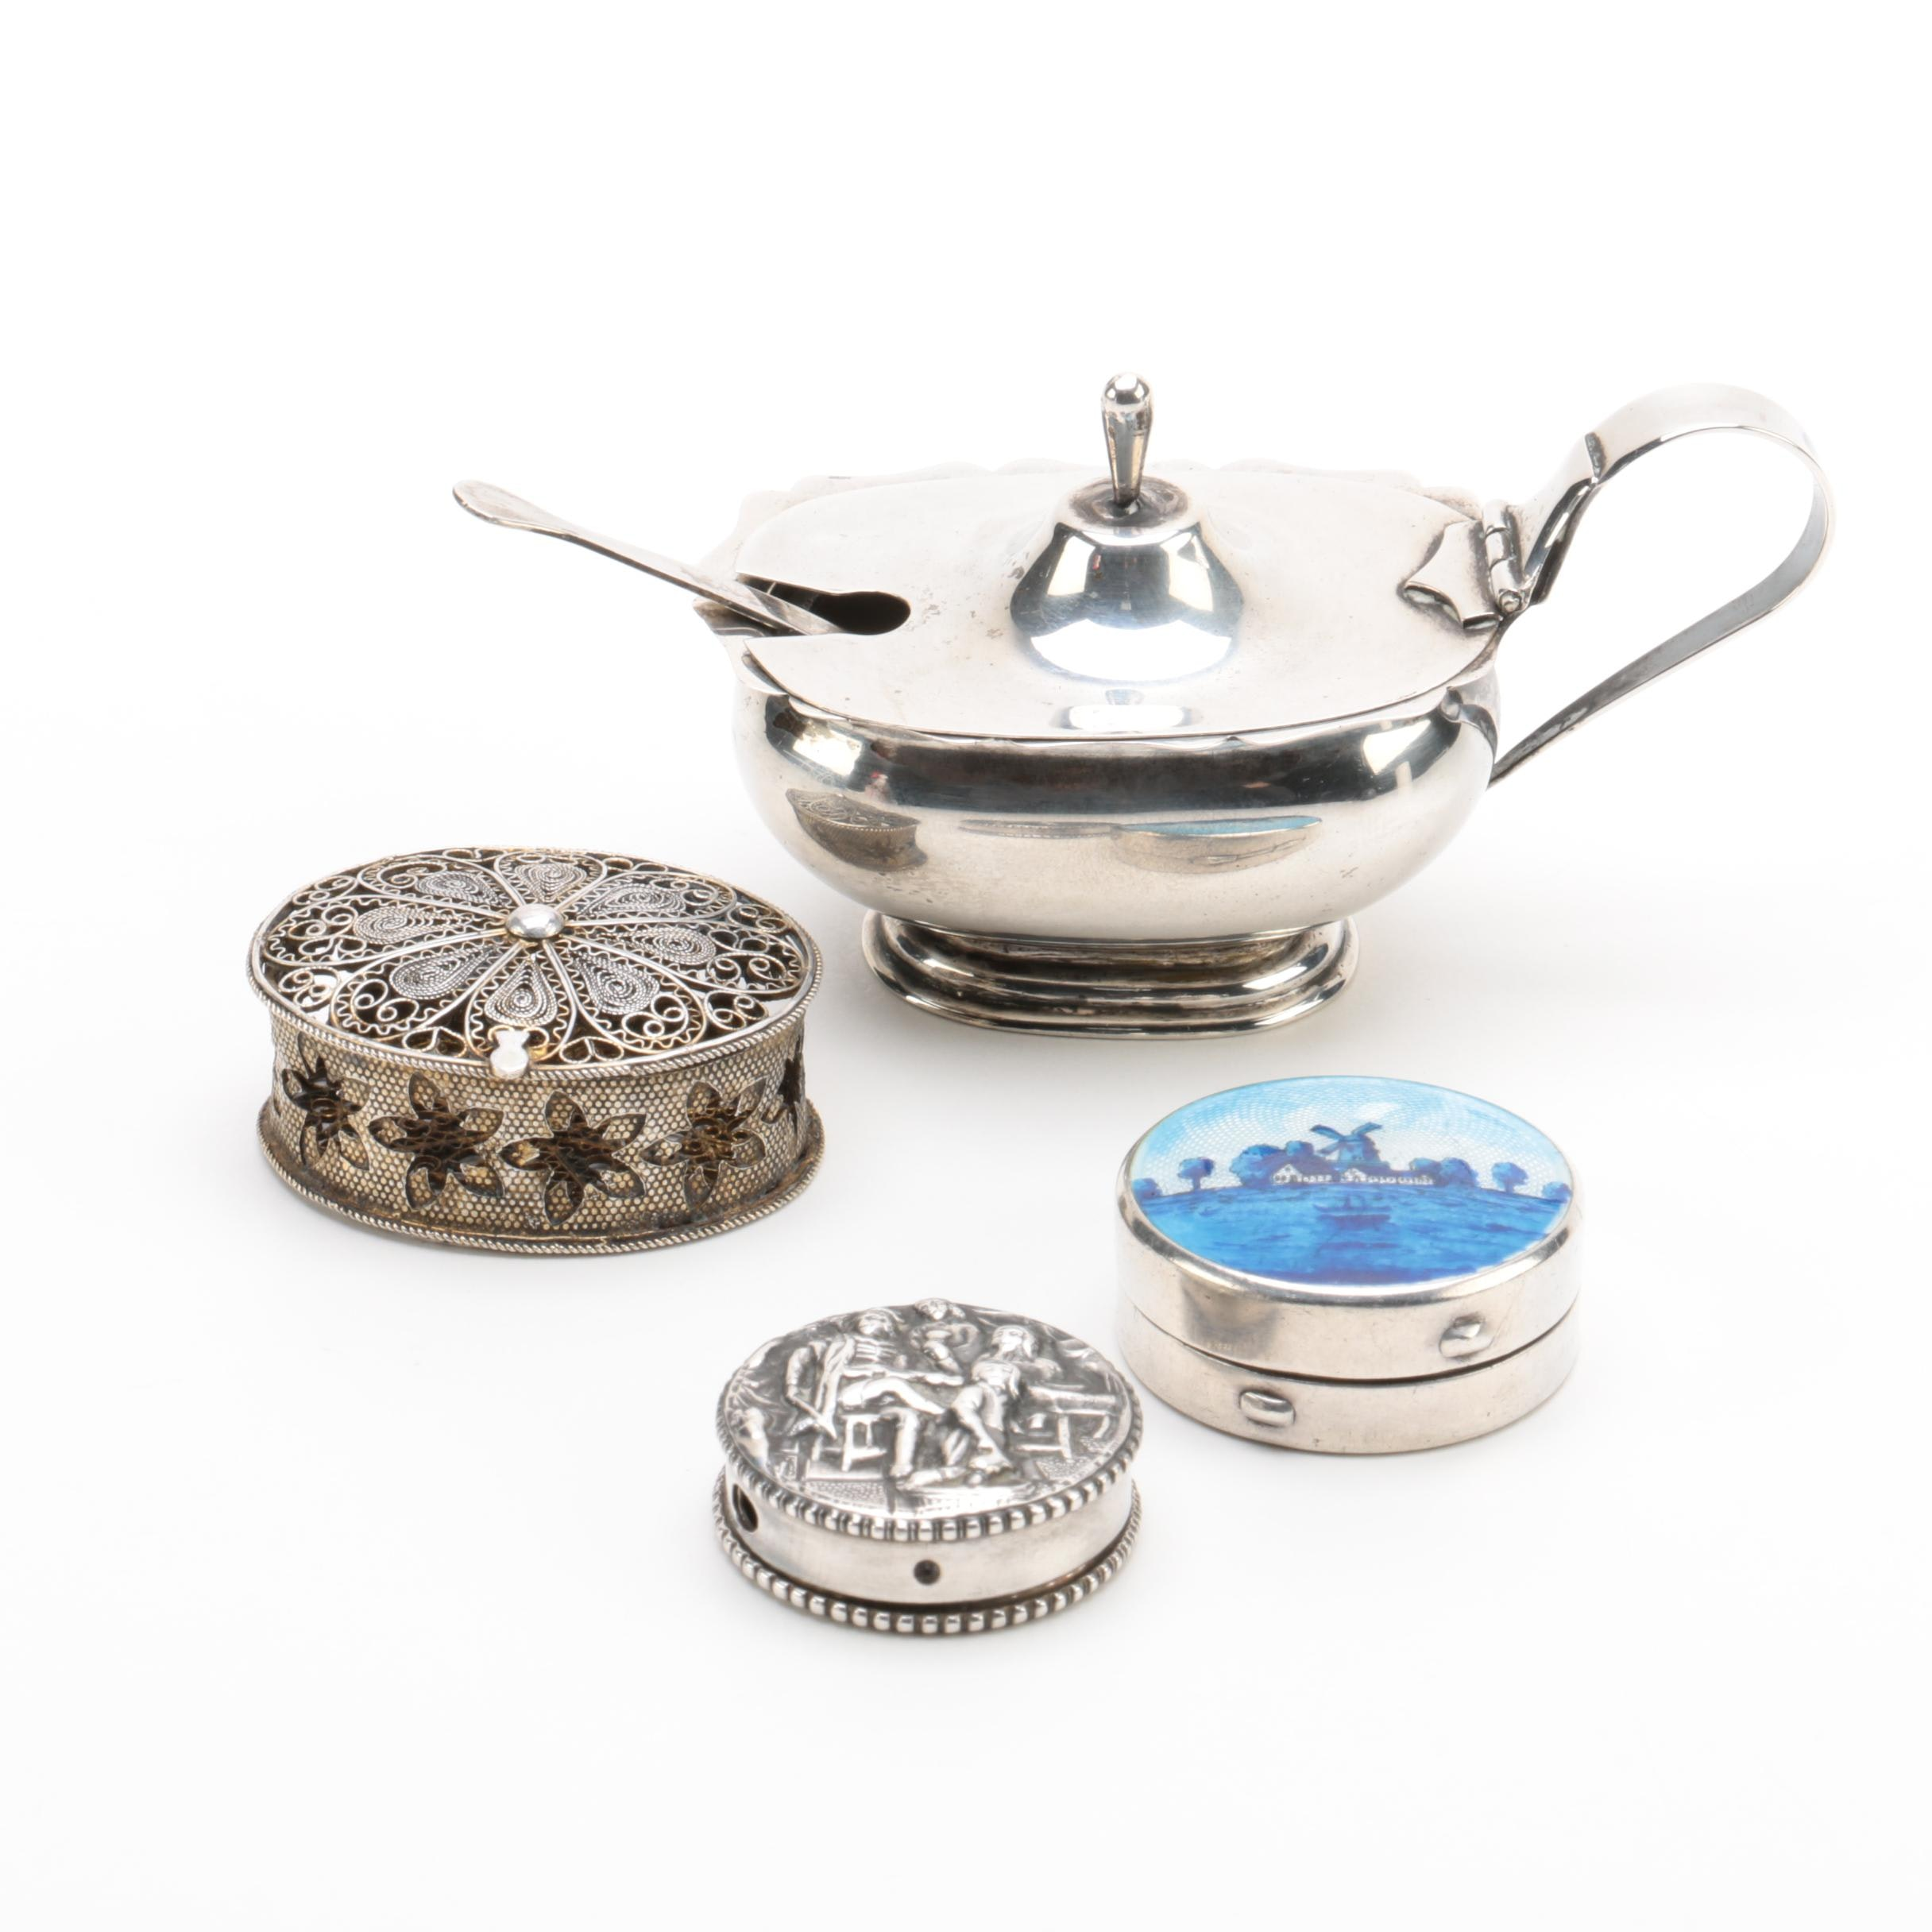 Silver Trinket Boxes and Mustard Pot